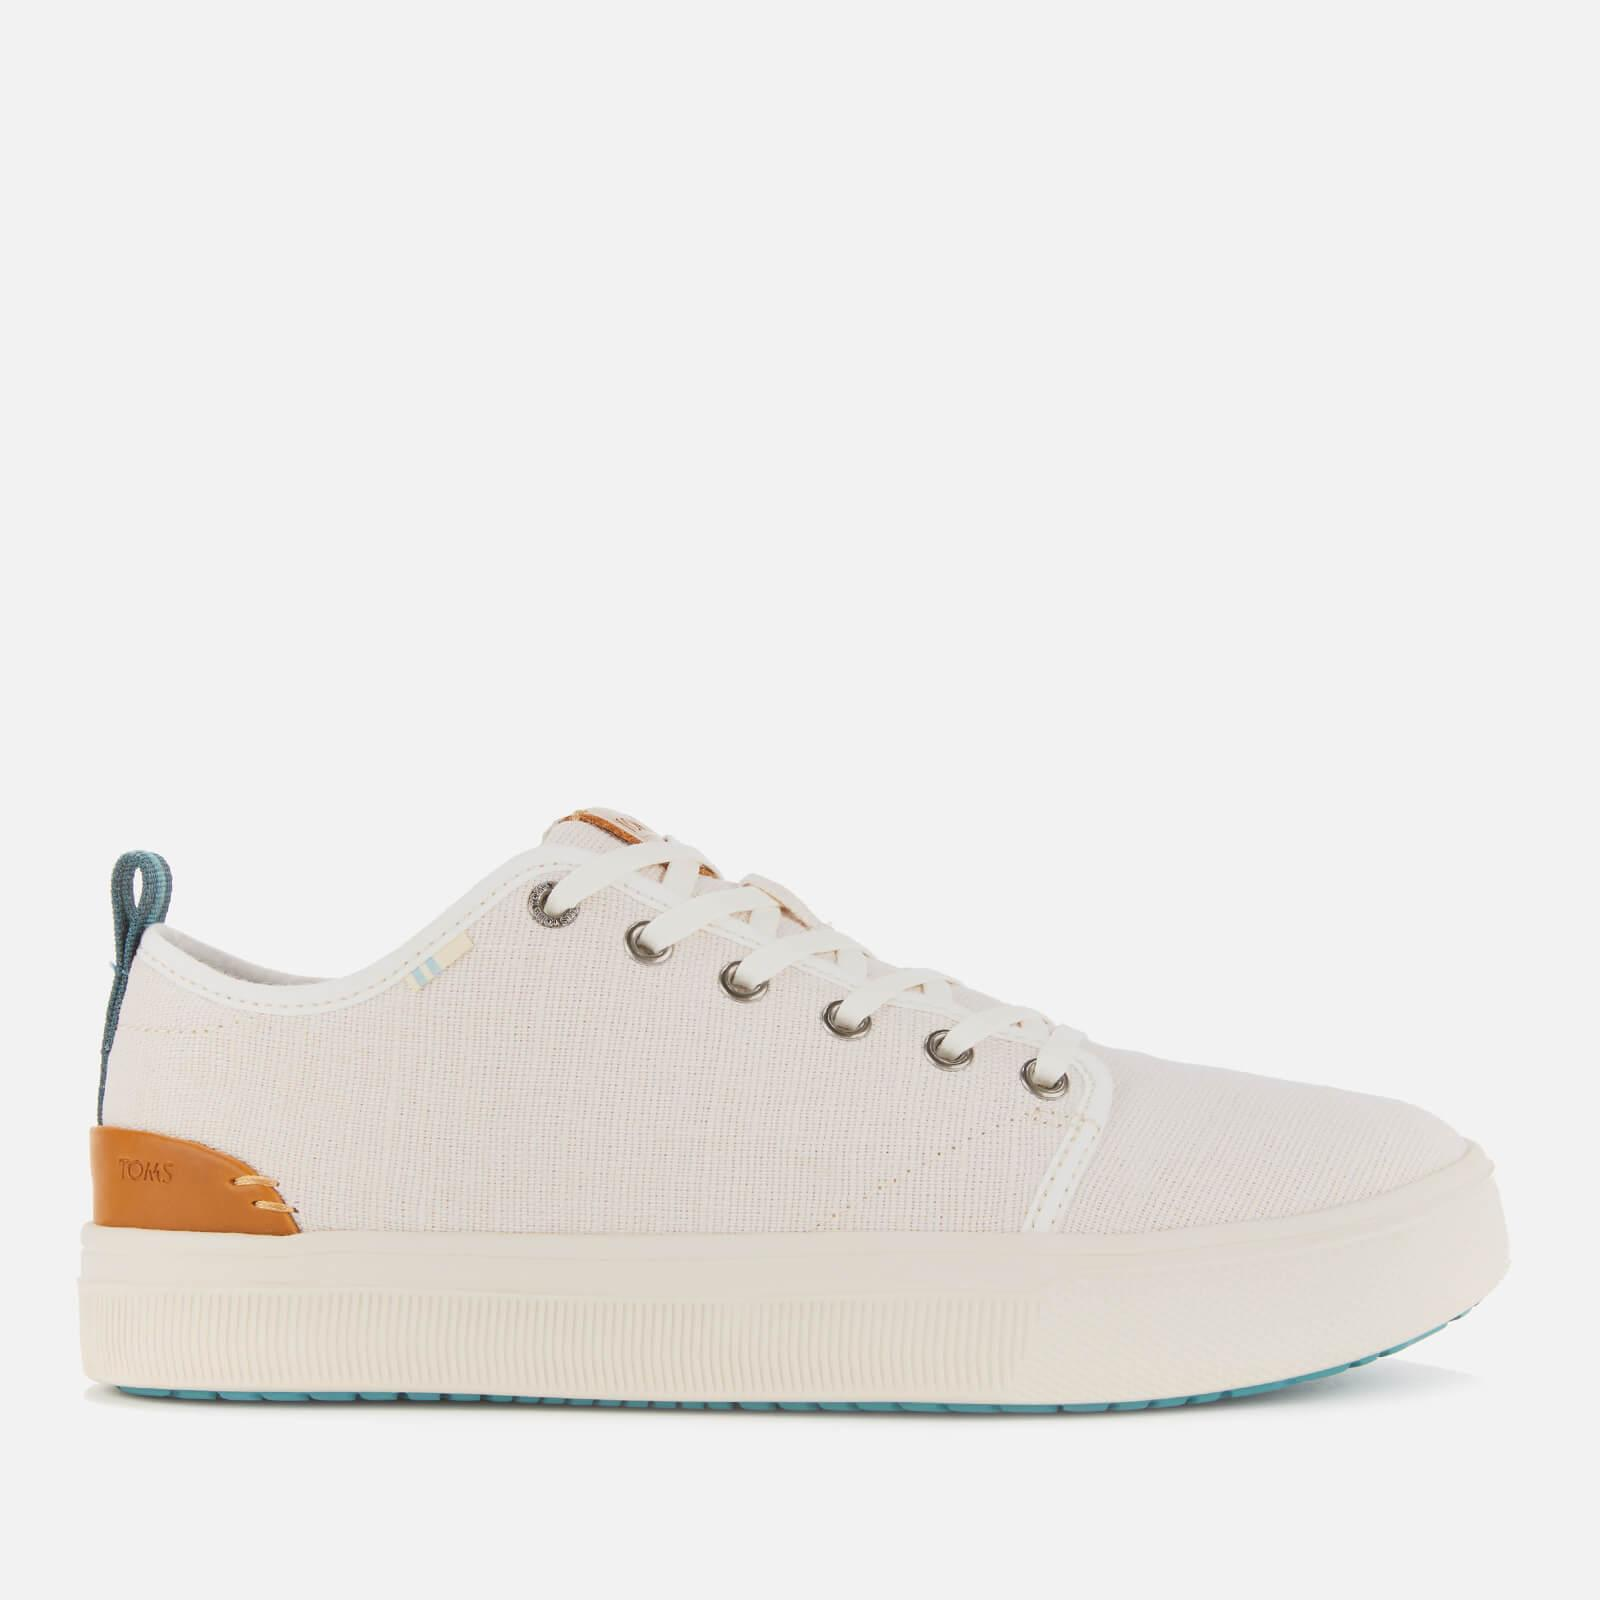 191ee24380f Lyst - TOMS Trvl Lite Low Trainers in White for Men